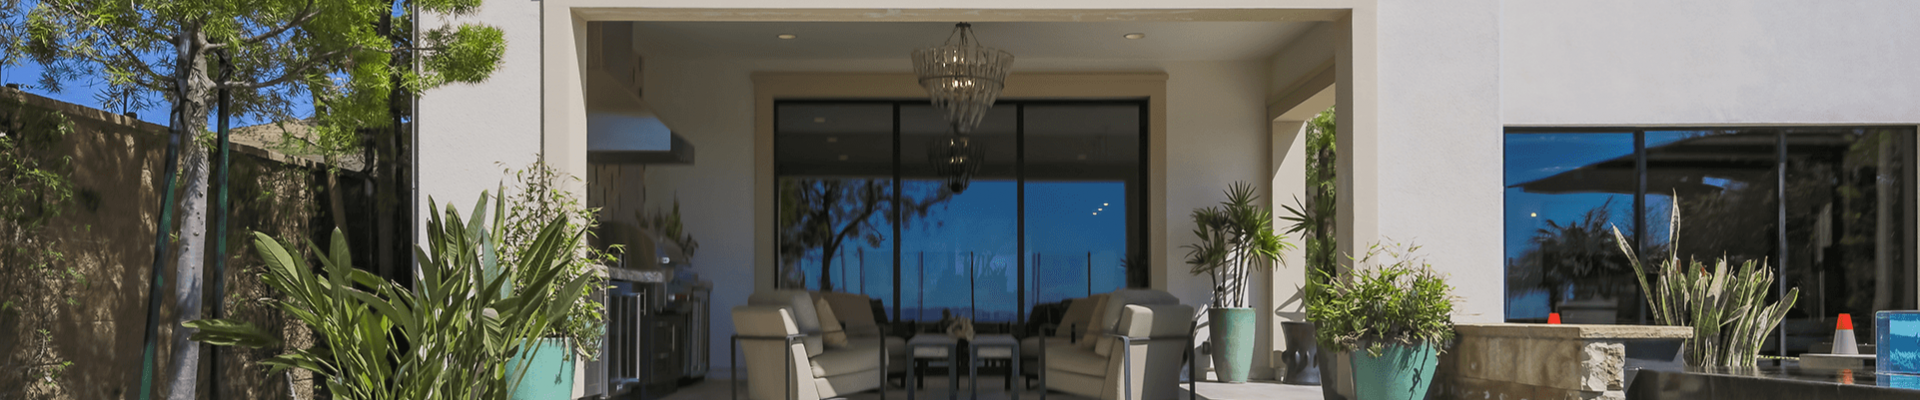 Window walls by Palmdale Glass